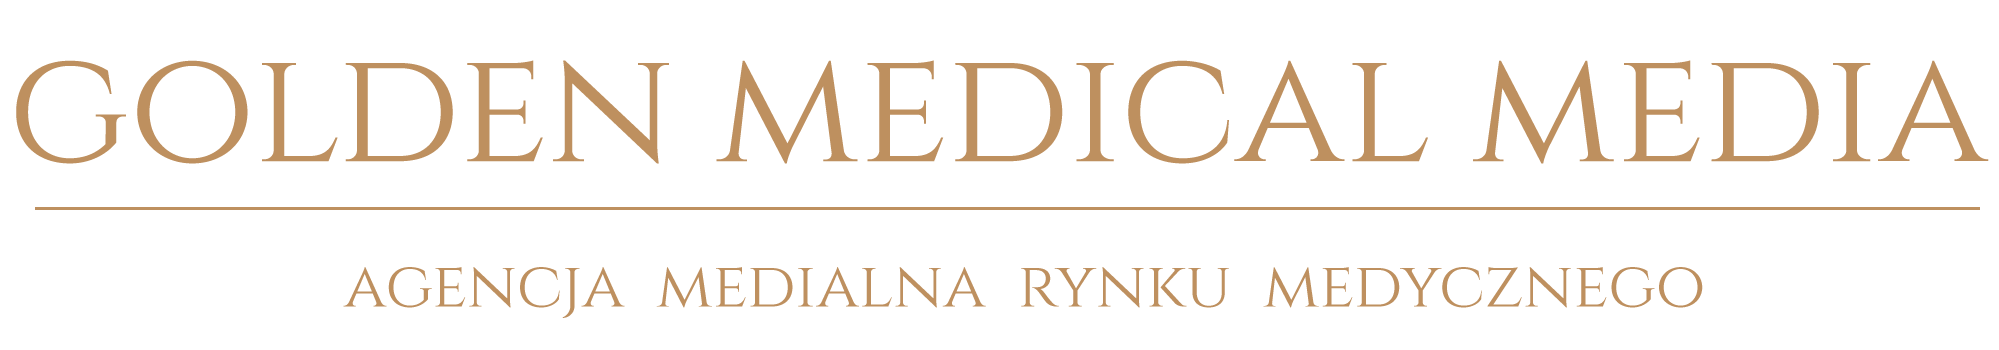 Golden Medical Media